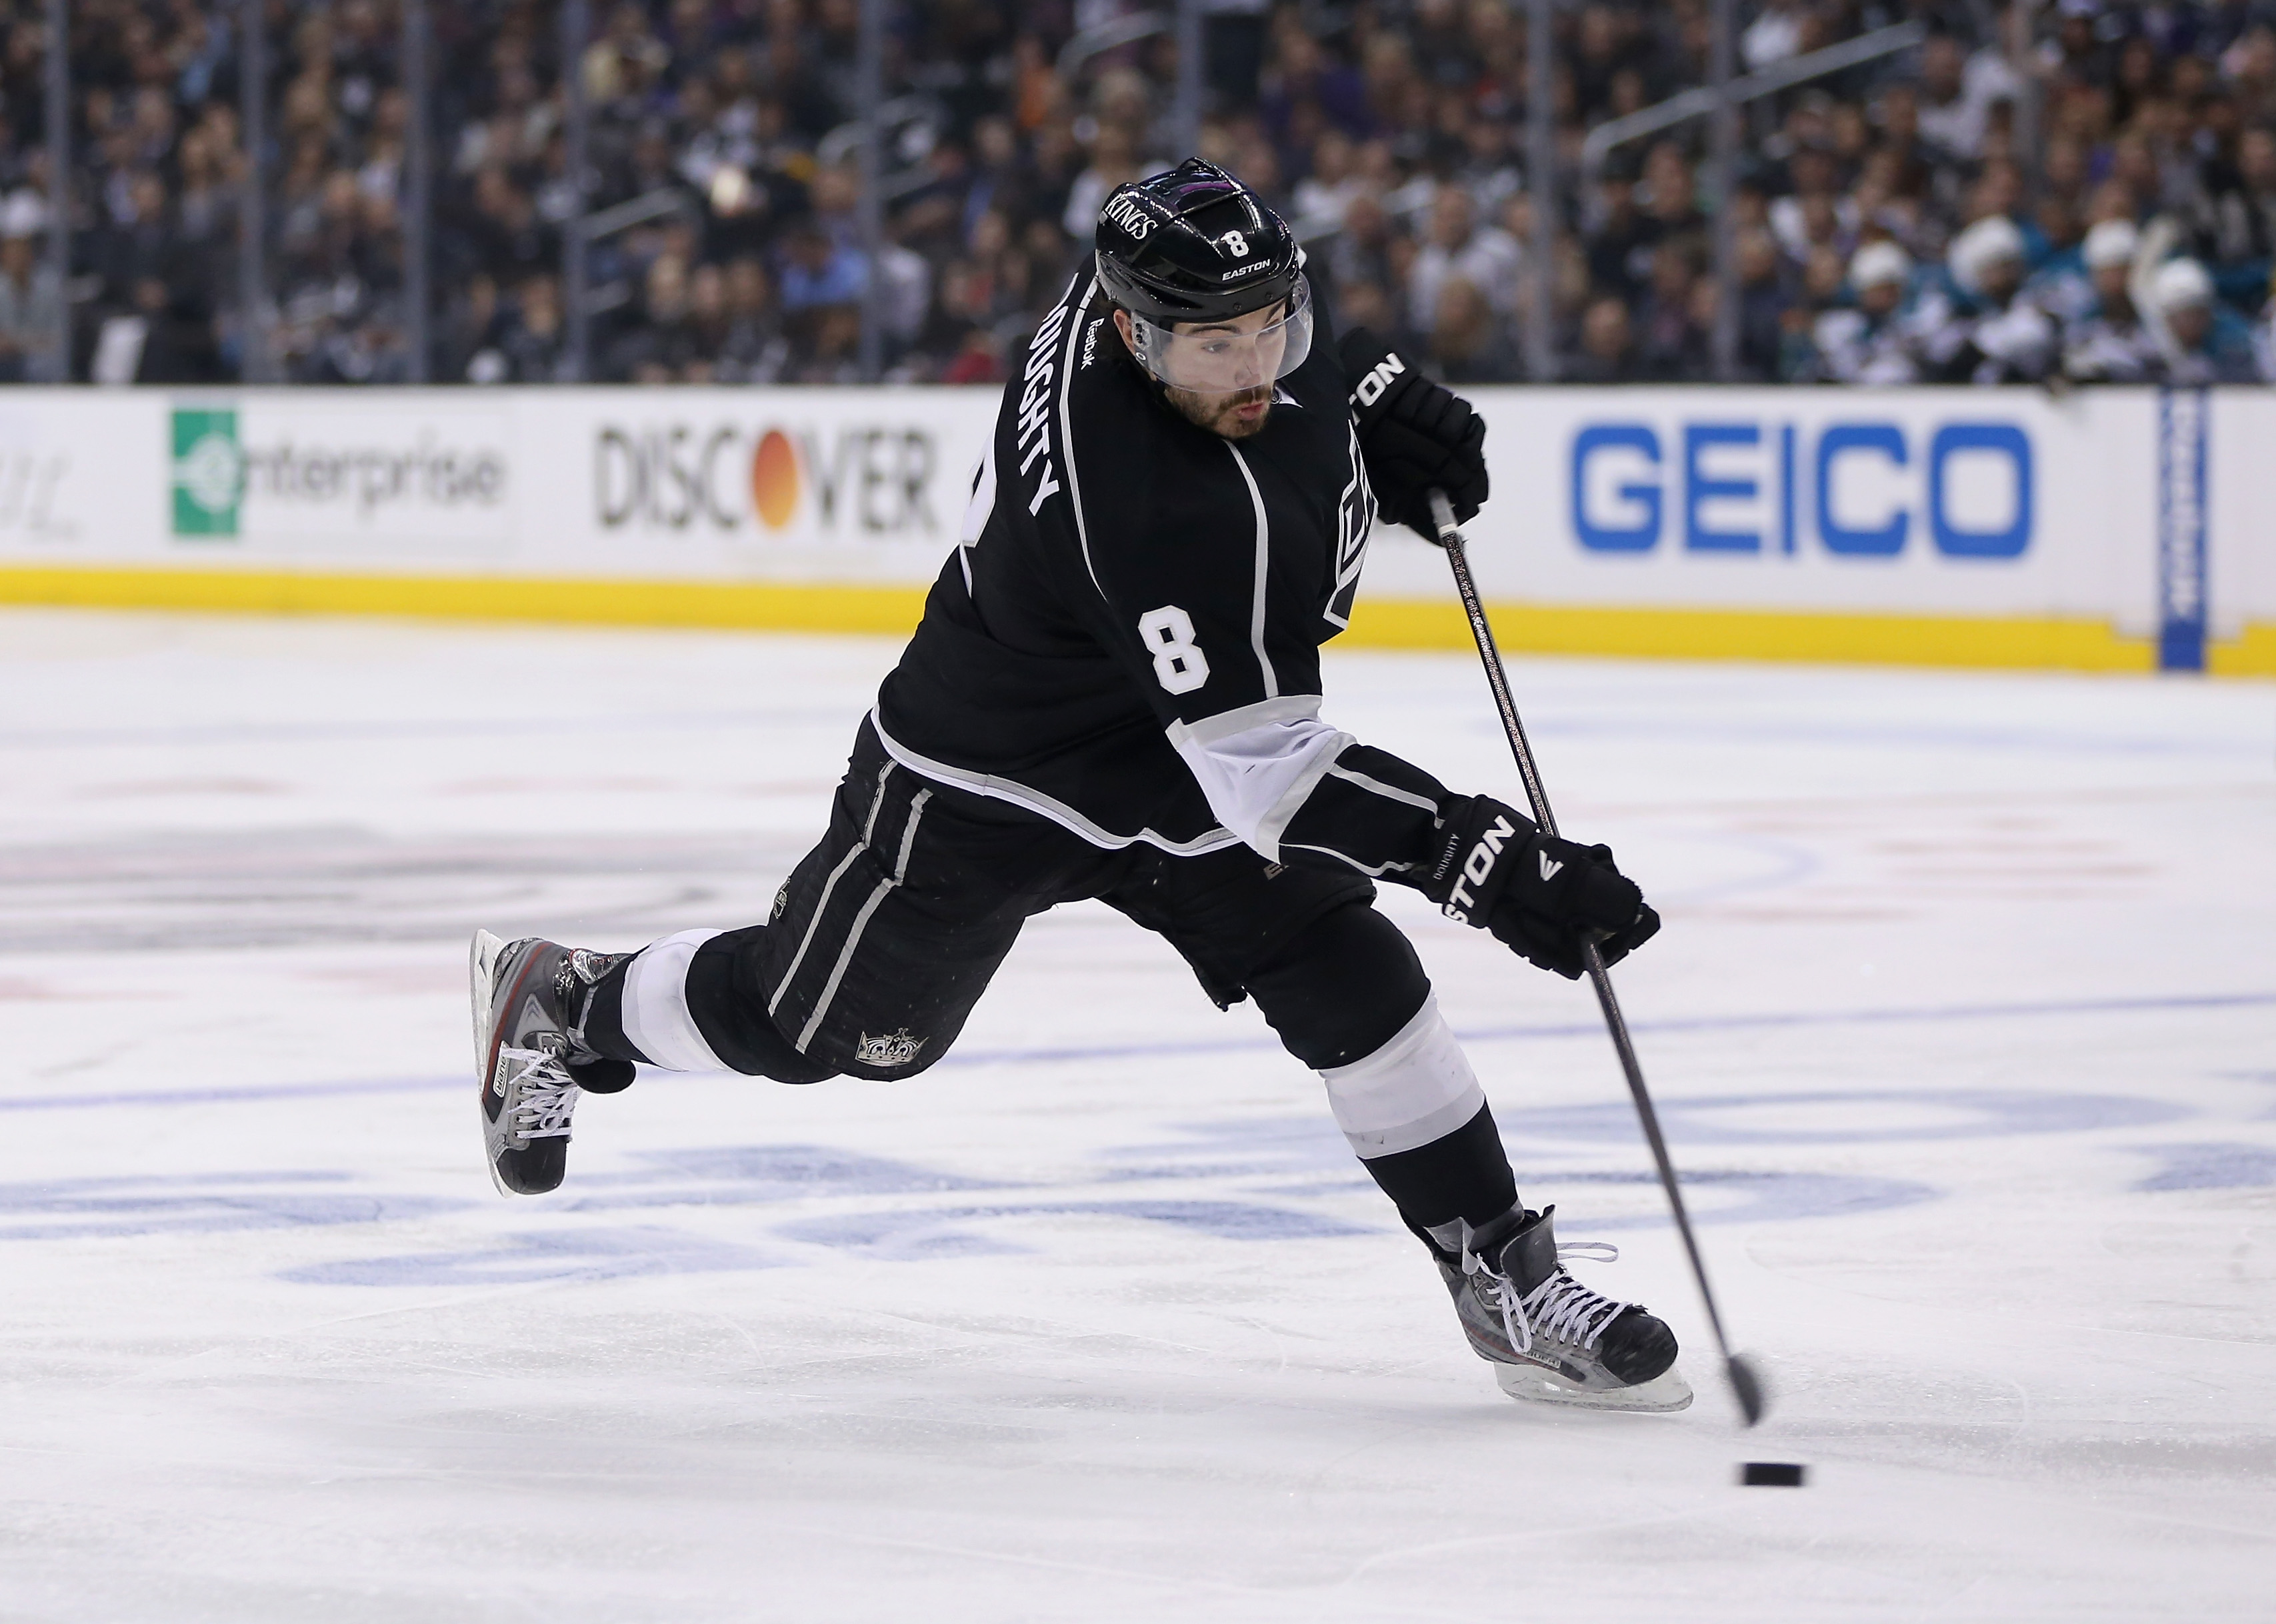 Drew Doughty of the Los Angeles Kings shoots and scores a goal against the San Jose Sharks in the second period of Game Two of the Western Conference Semifinals during the 2013 NHL Stanley Cup Playoffs at Staples Center on May 16, 2013 in Los Angeles, California. The Kings defeated the Sharks 4-3.